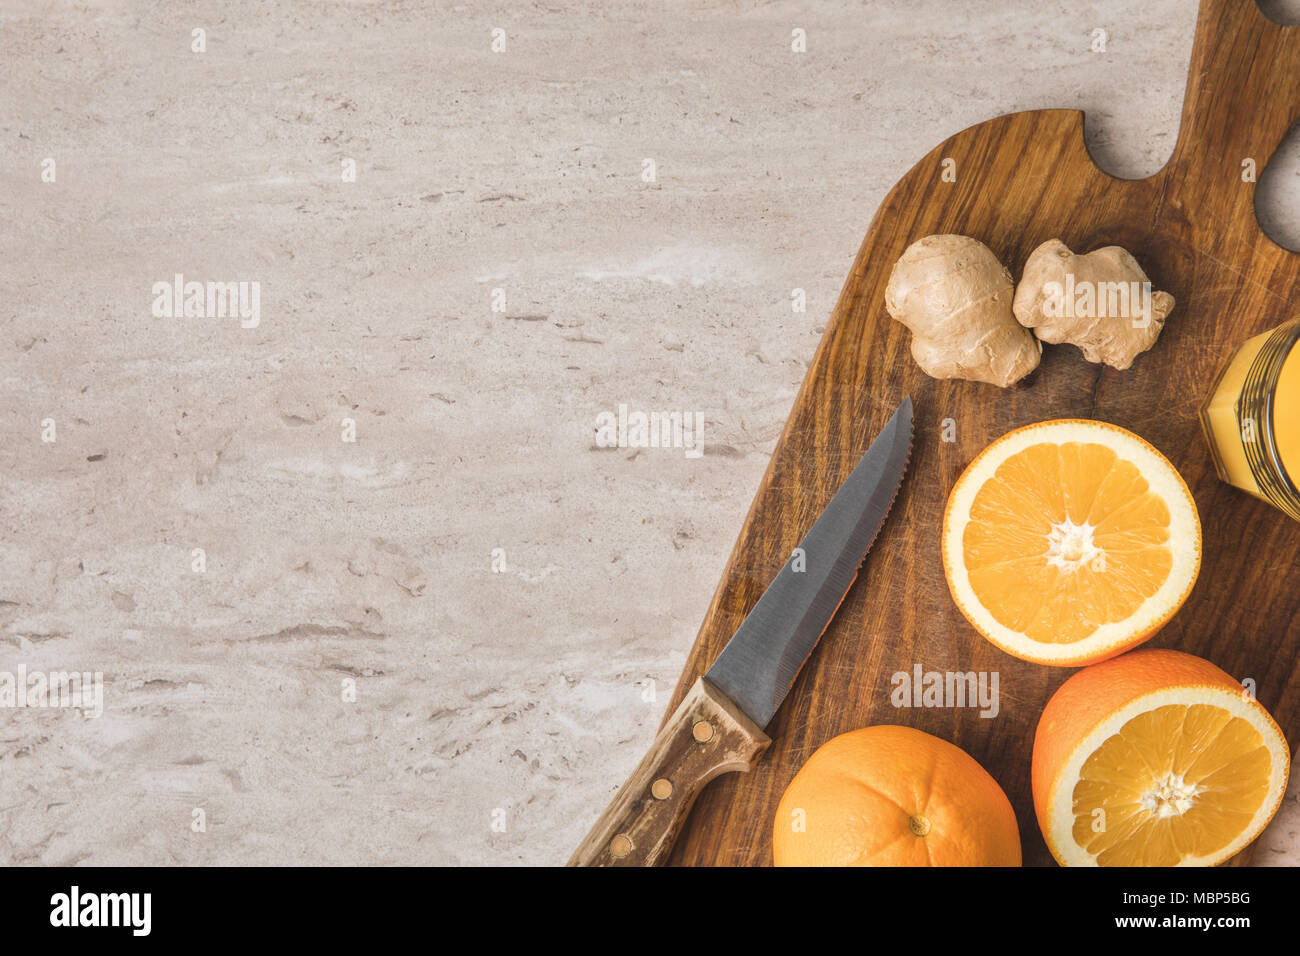 top view of oranges, knife and ginger on marble surface - Stock Image